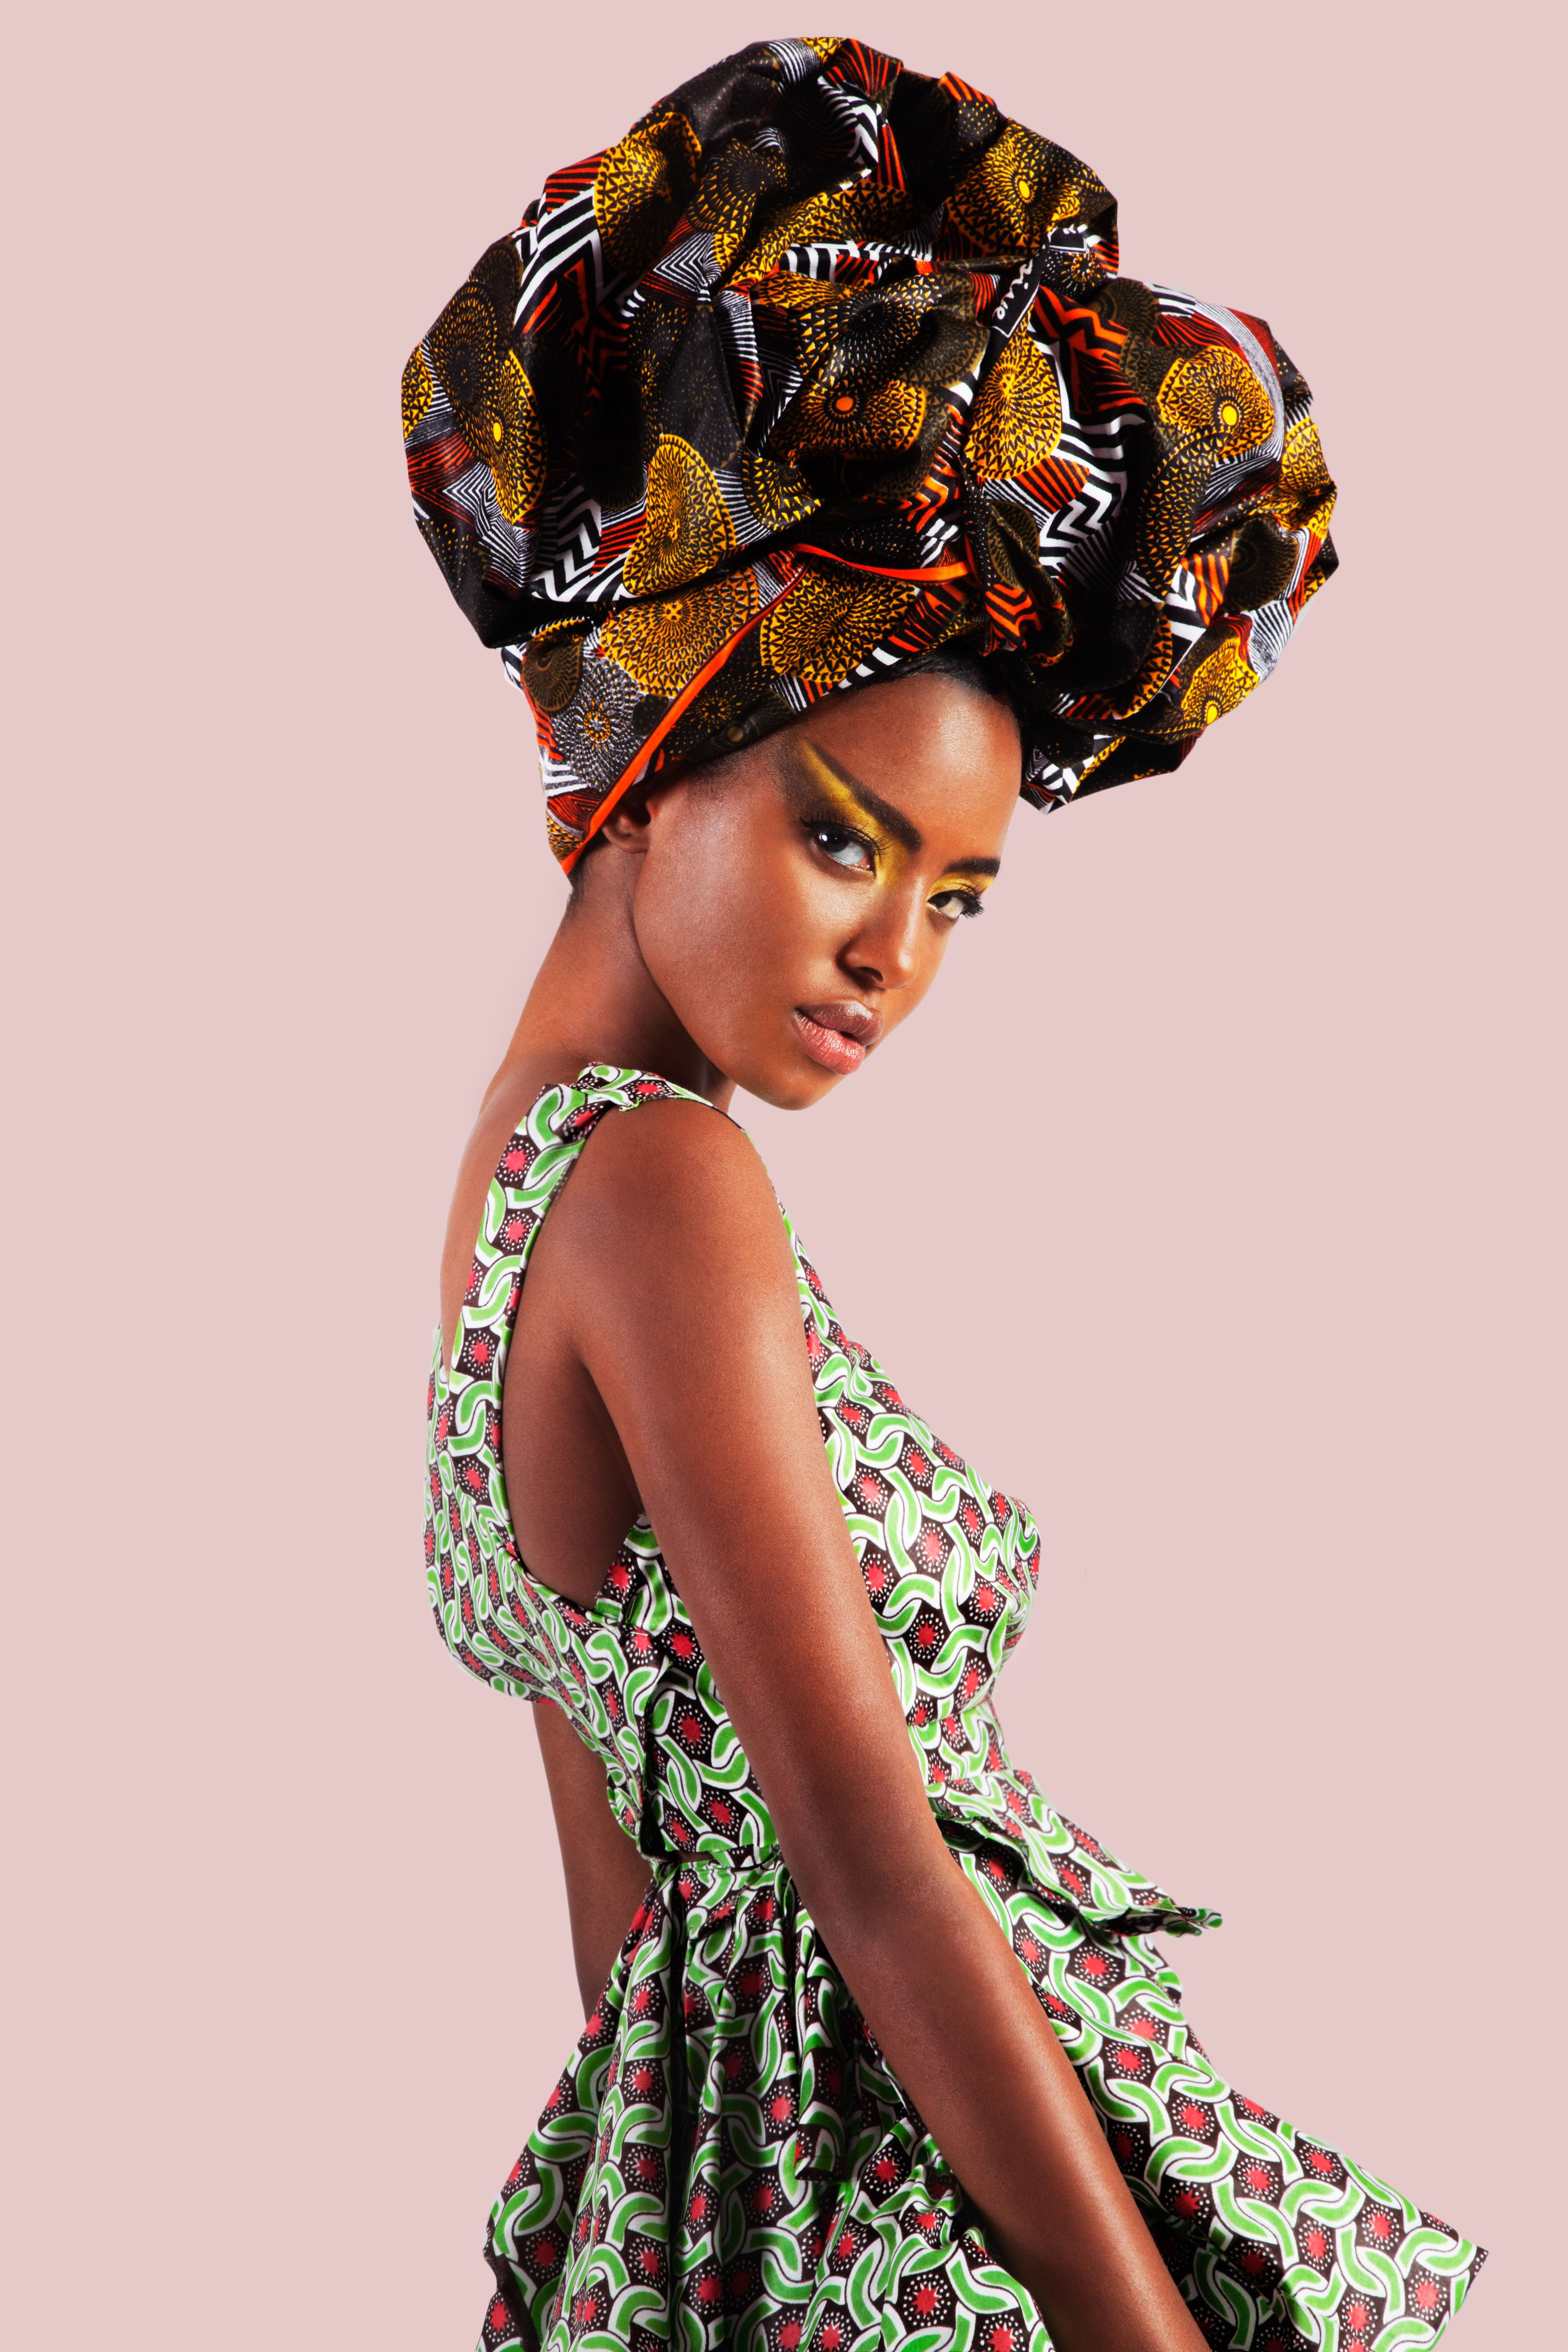 About Printex Presents #ADukuCrowns #Ghana Model: Miatta Stylist: Adama Kai Photography: Mambu Bayoh Campaign Design & Edit: Narh Concepts Make Up: Sharon Dulo Creative Lead: Vickie Remoe African Print Textiles - Printex Ghana #AfricanFashion